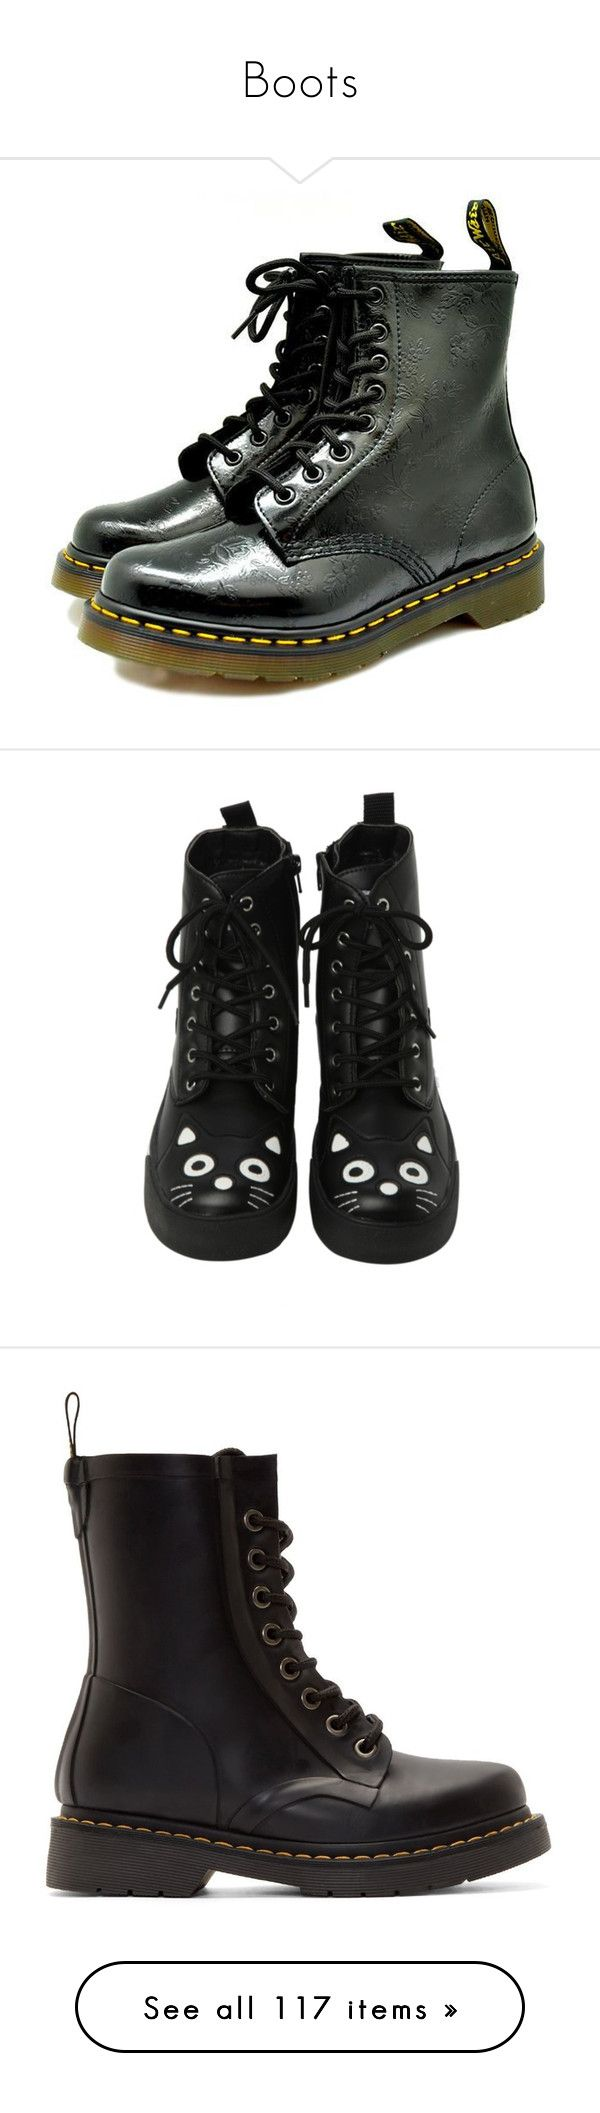 """""""Boots"""" by marleen03 ❤ liked on Polyvore featuring shoes, boots, ankle booties, botas, punk boots, punk rock boots, t u k shoes, black boots, black shoes and t u k boots"""